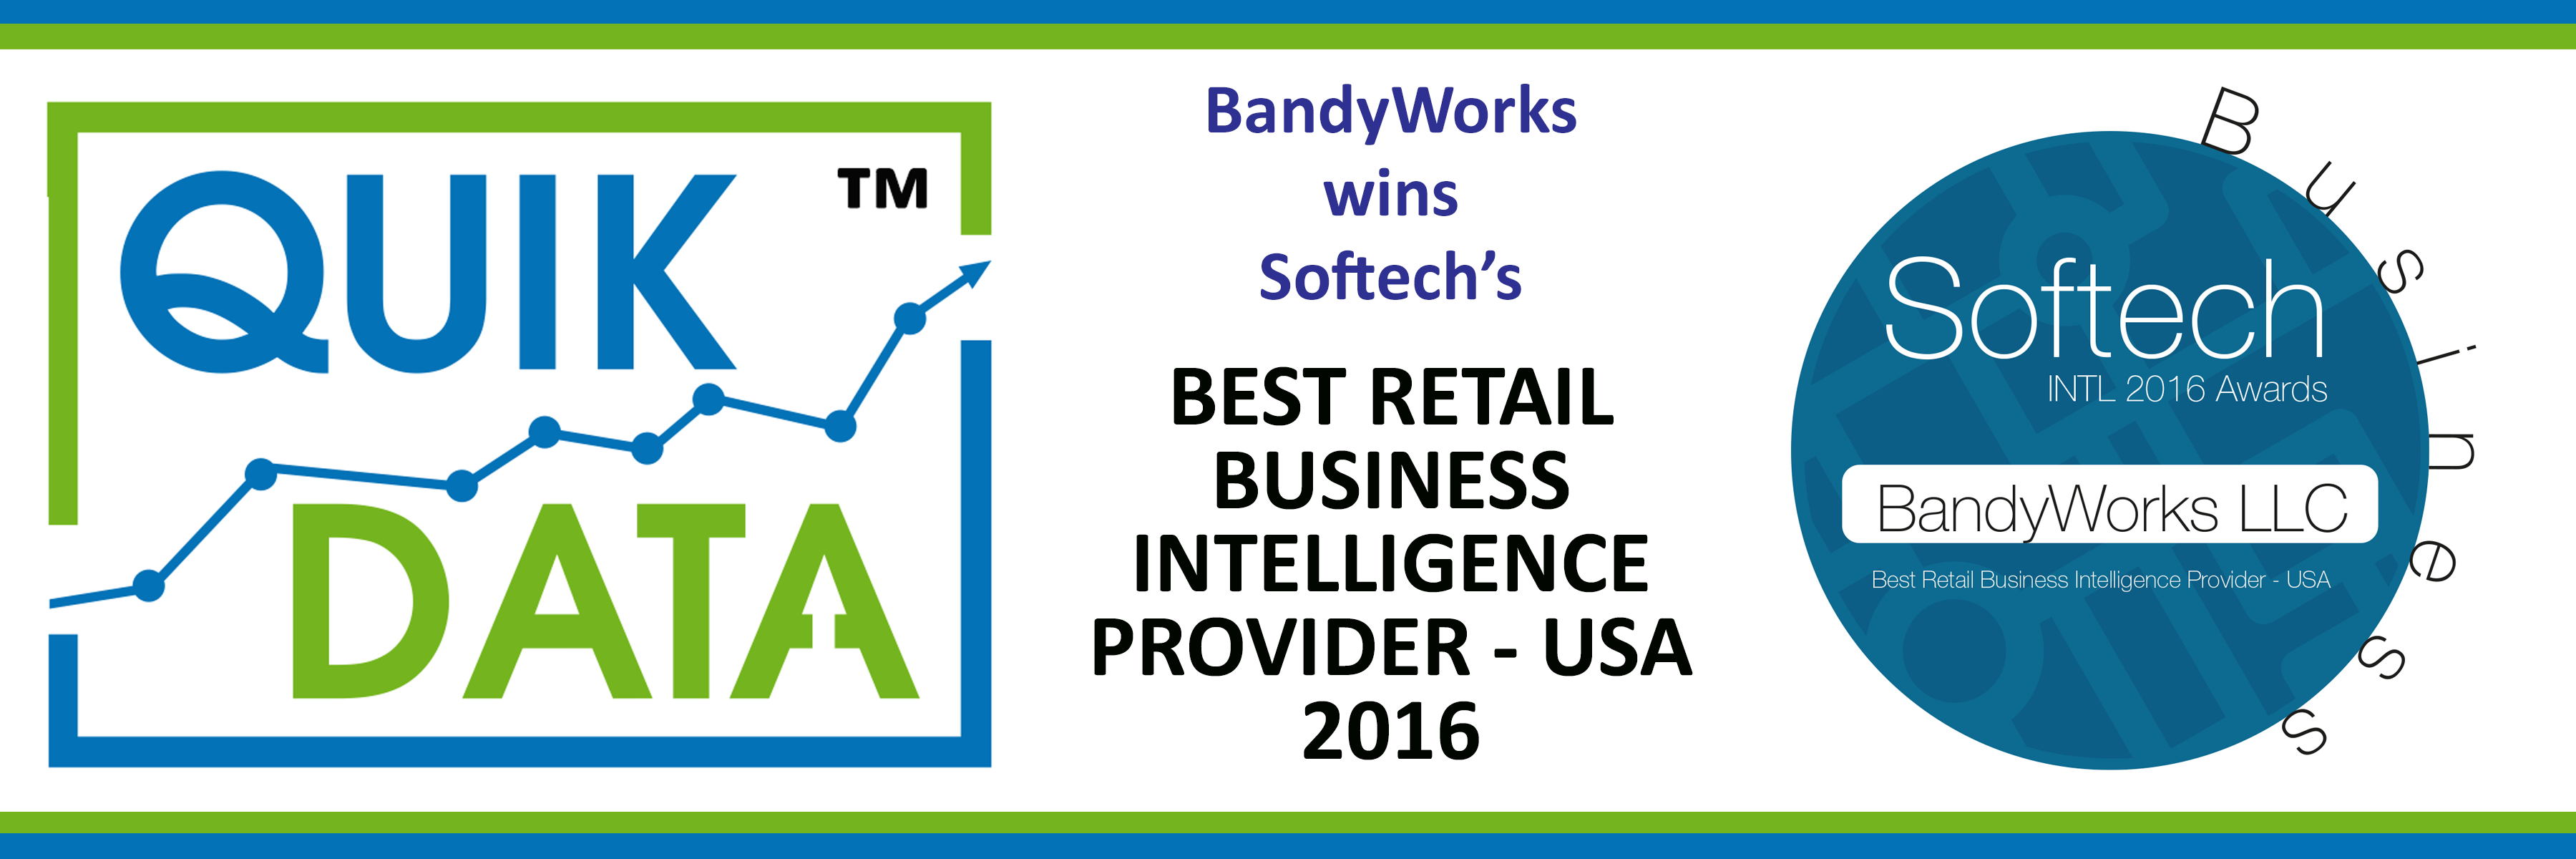 """BandyWorks has been Awarded as Softech's 2016 """"Best Retail Business Intelligence Provider USA""""!"""